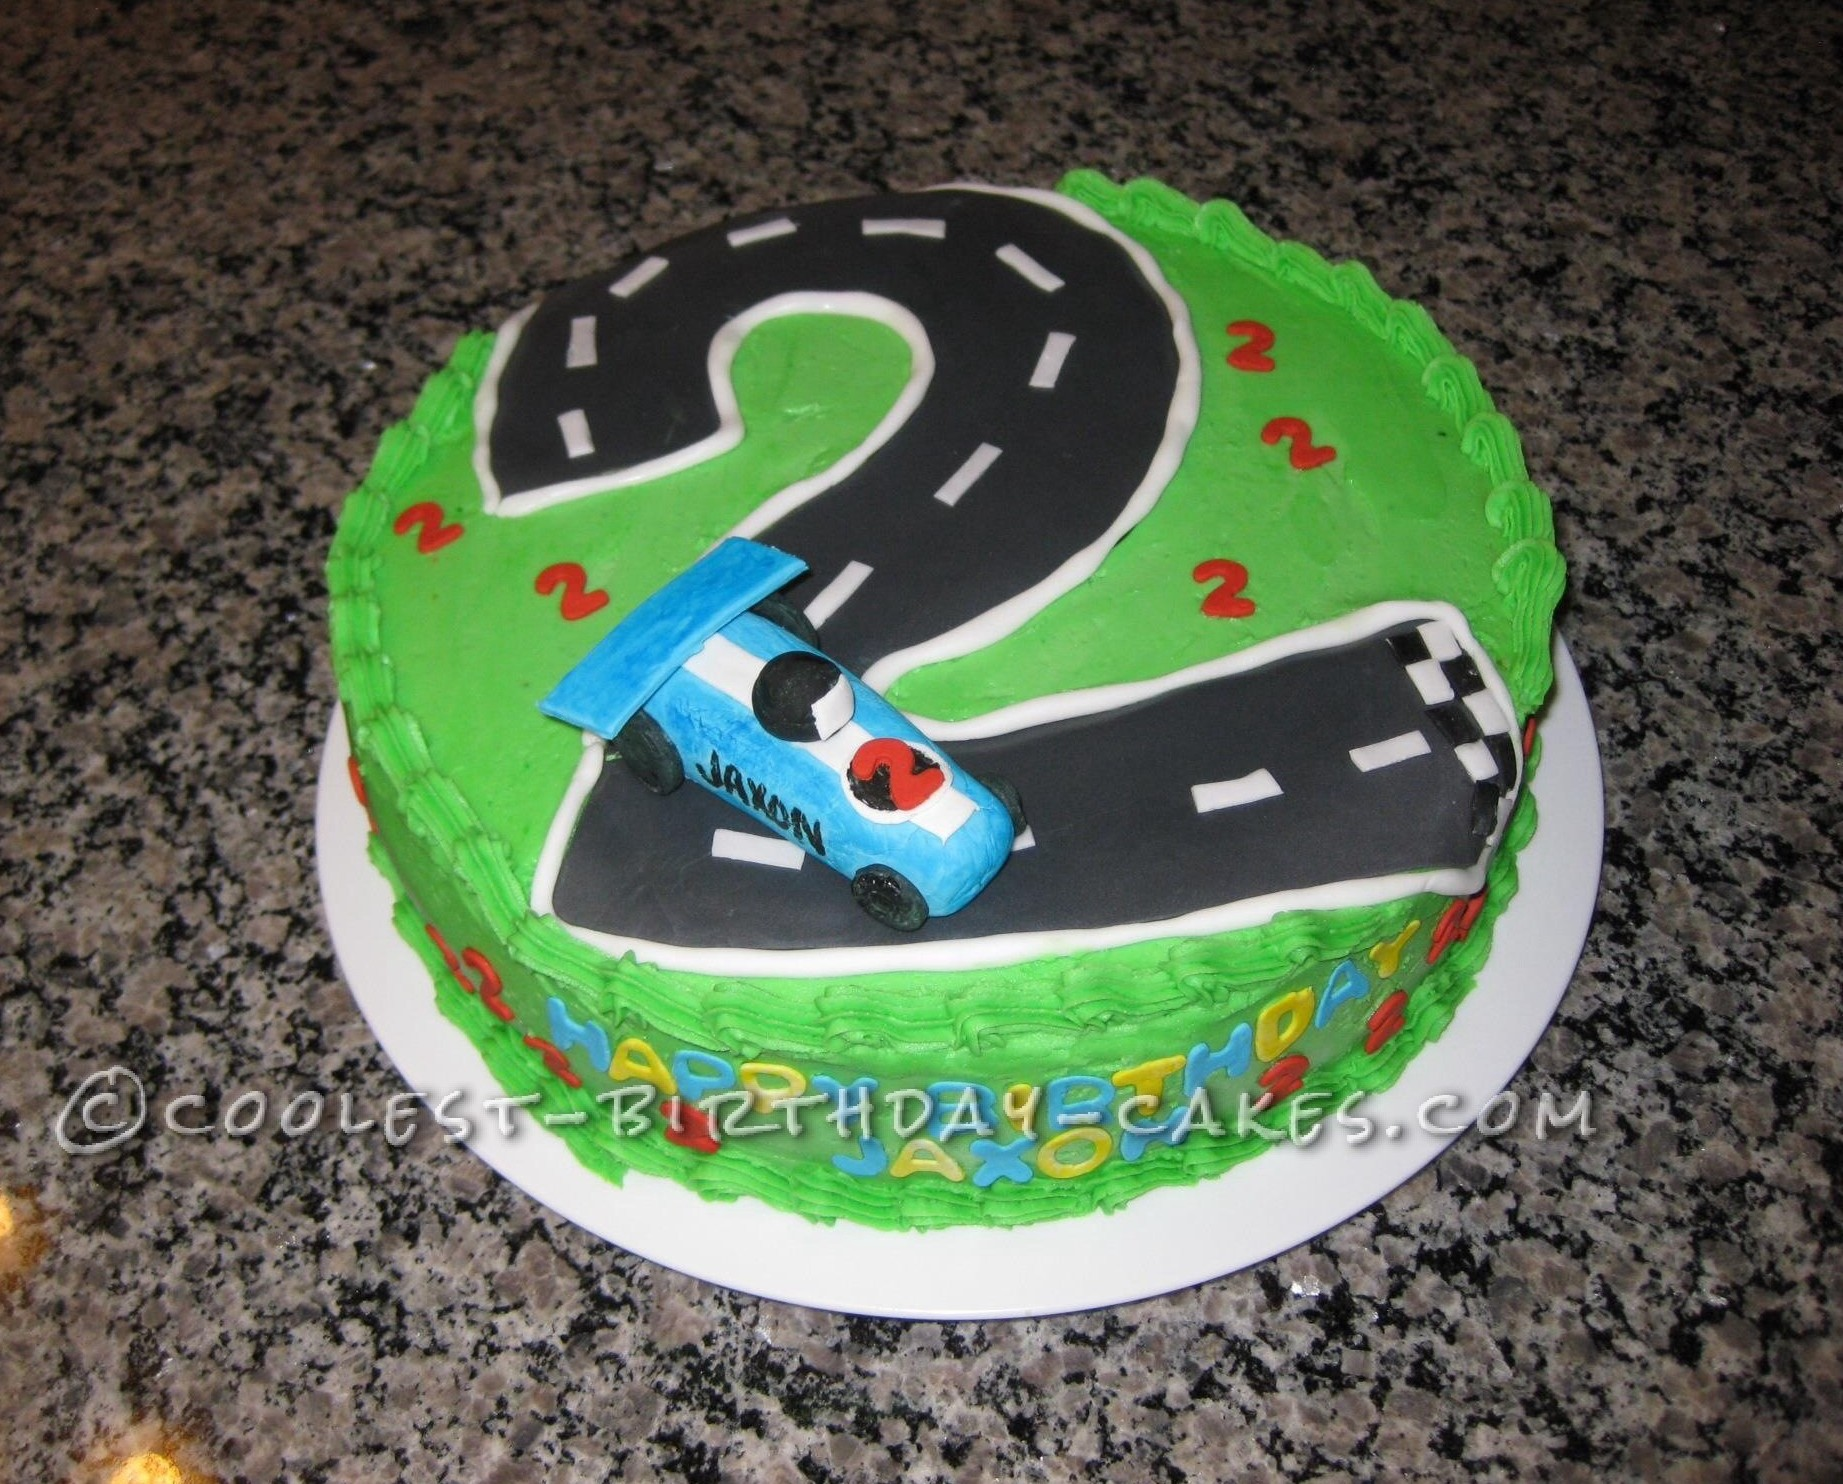 Cool Homemade Race Car Birthday Cake